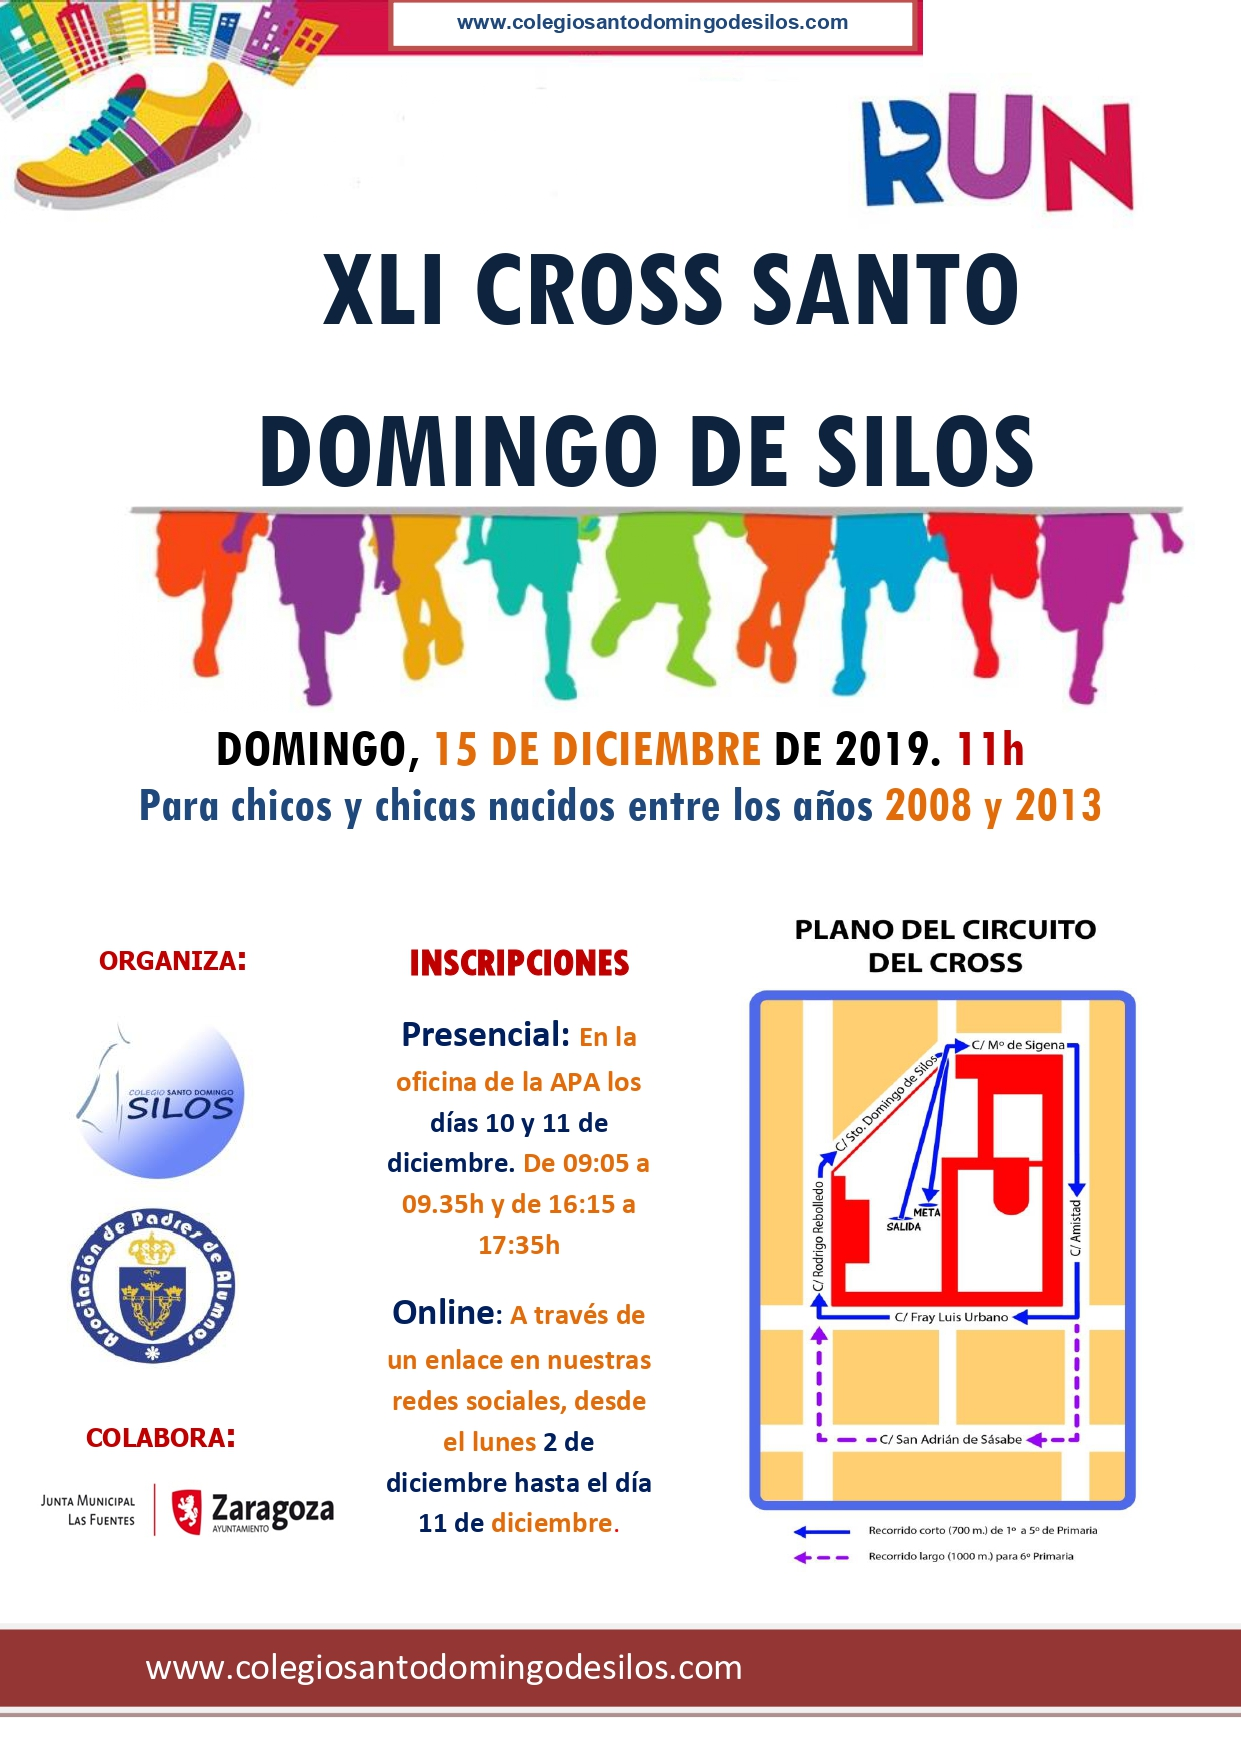 CROSS STO. DOMINGO DE SILOS